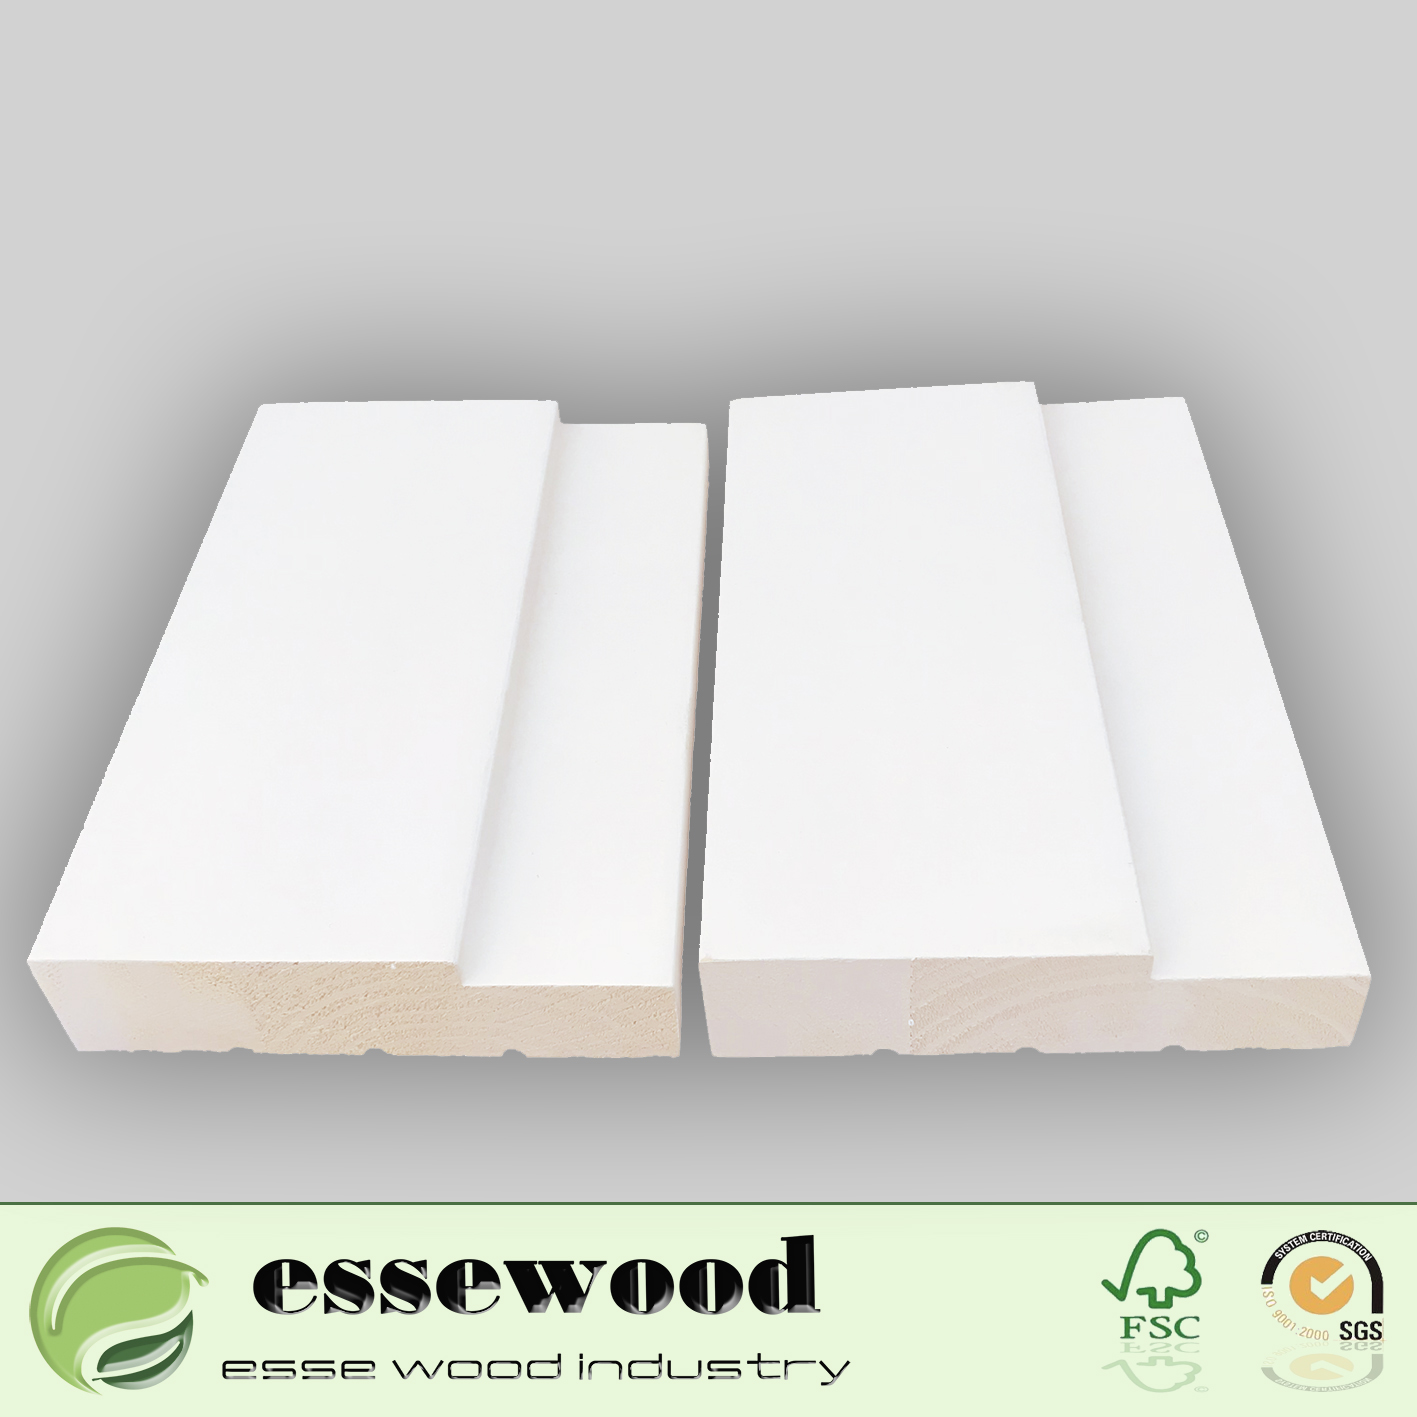 Decorative Millwork Door and Window Frame Moulding